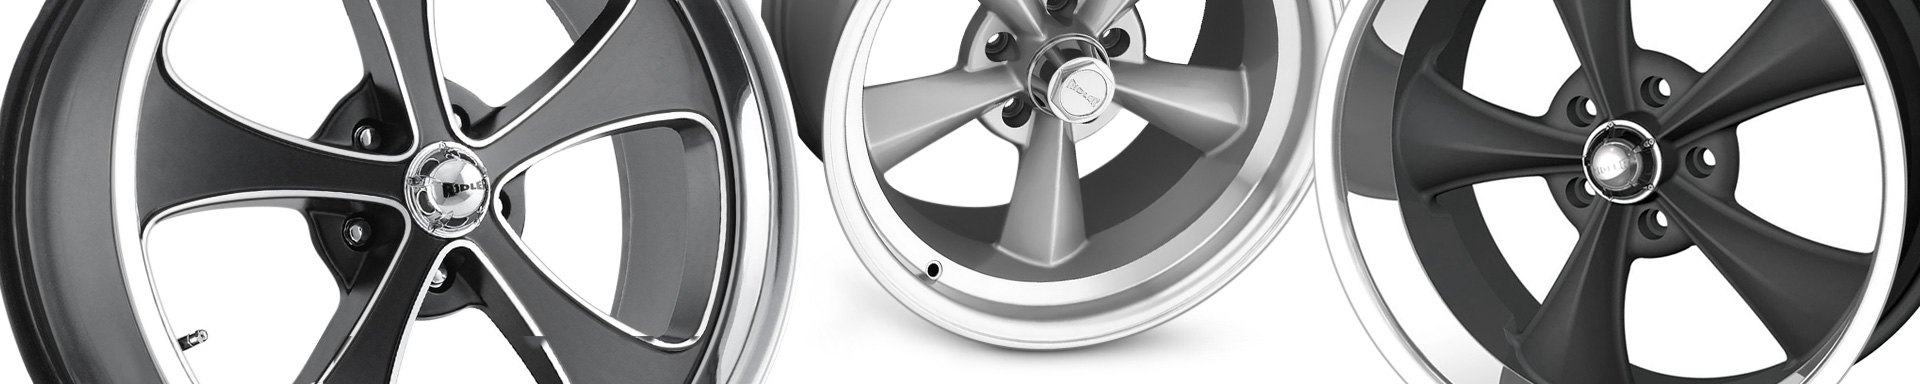 Universal RIDLER WHEELS & RIMS